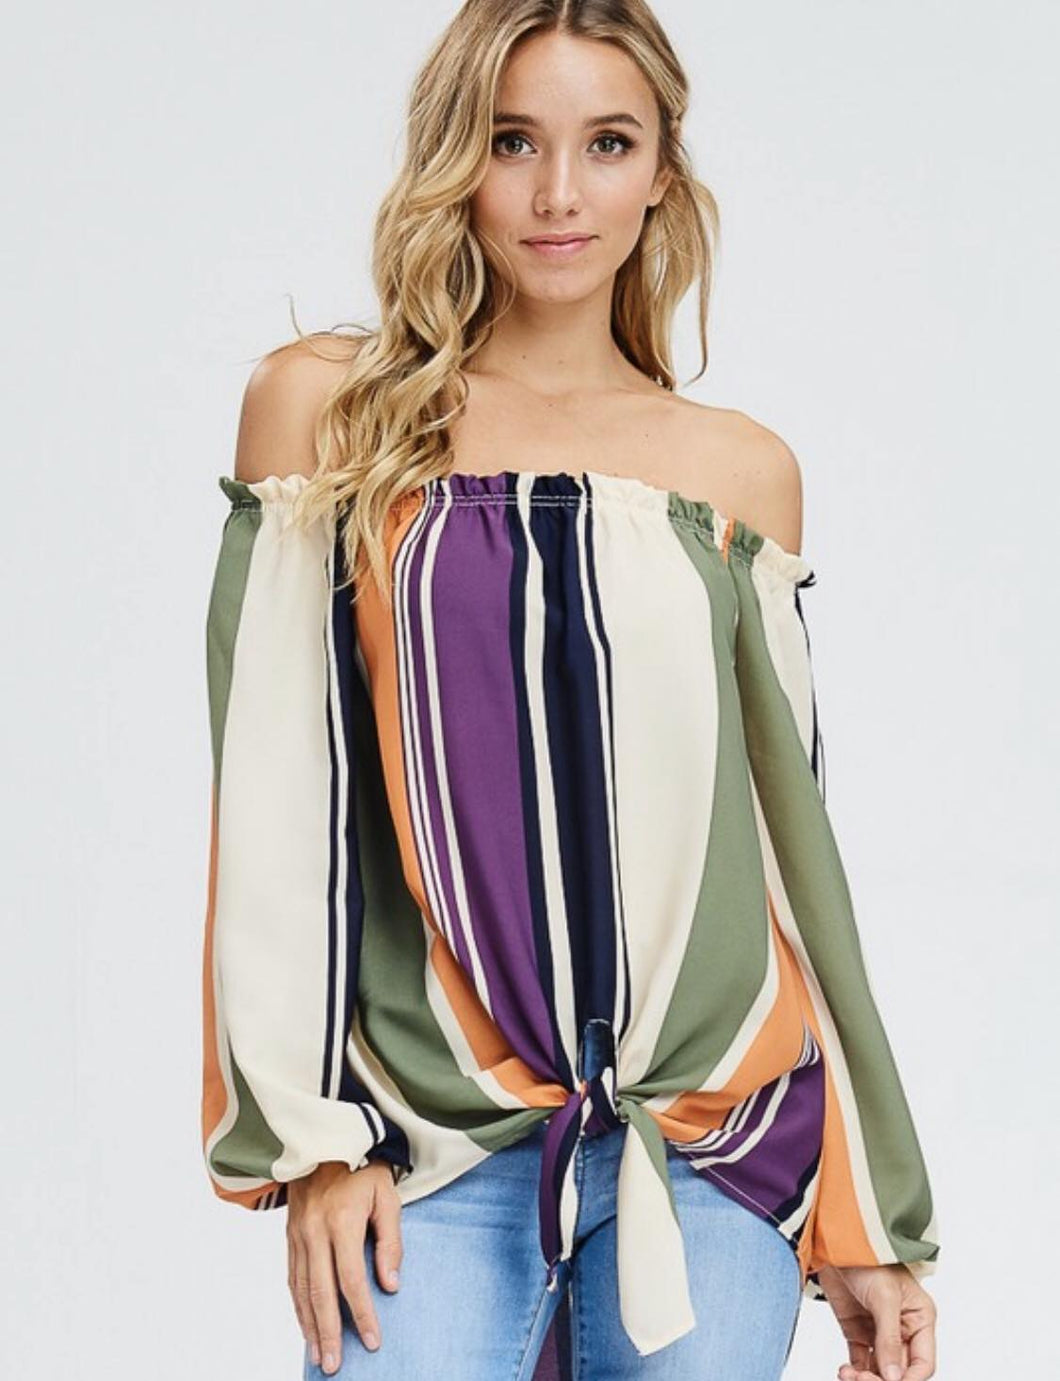 Woven Striped Off the Shoulder Tie Front Top - Small